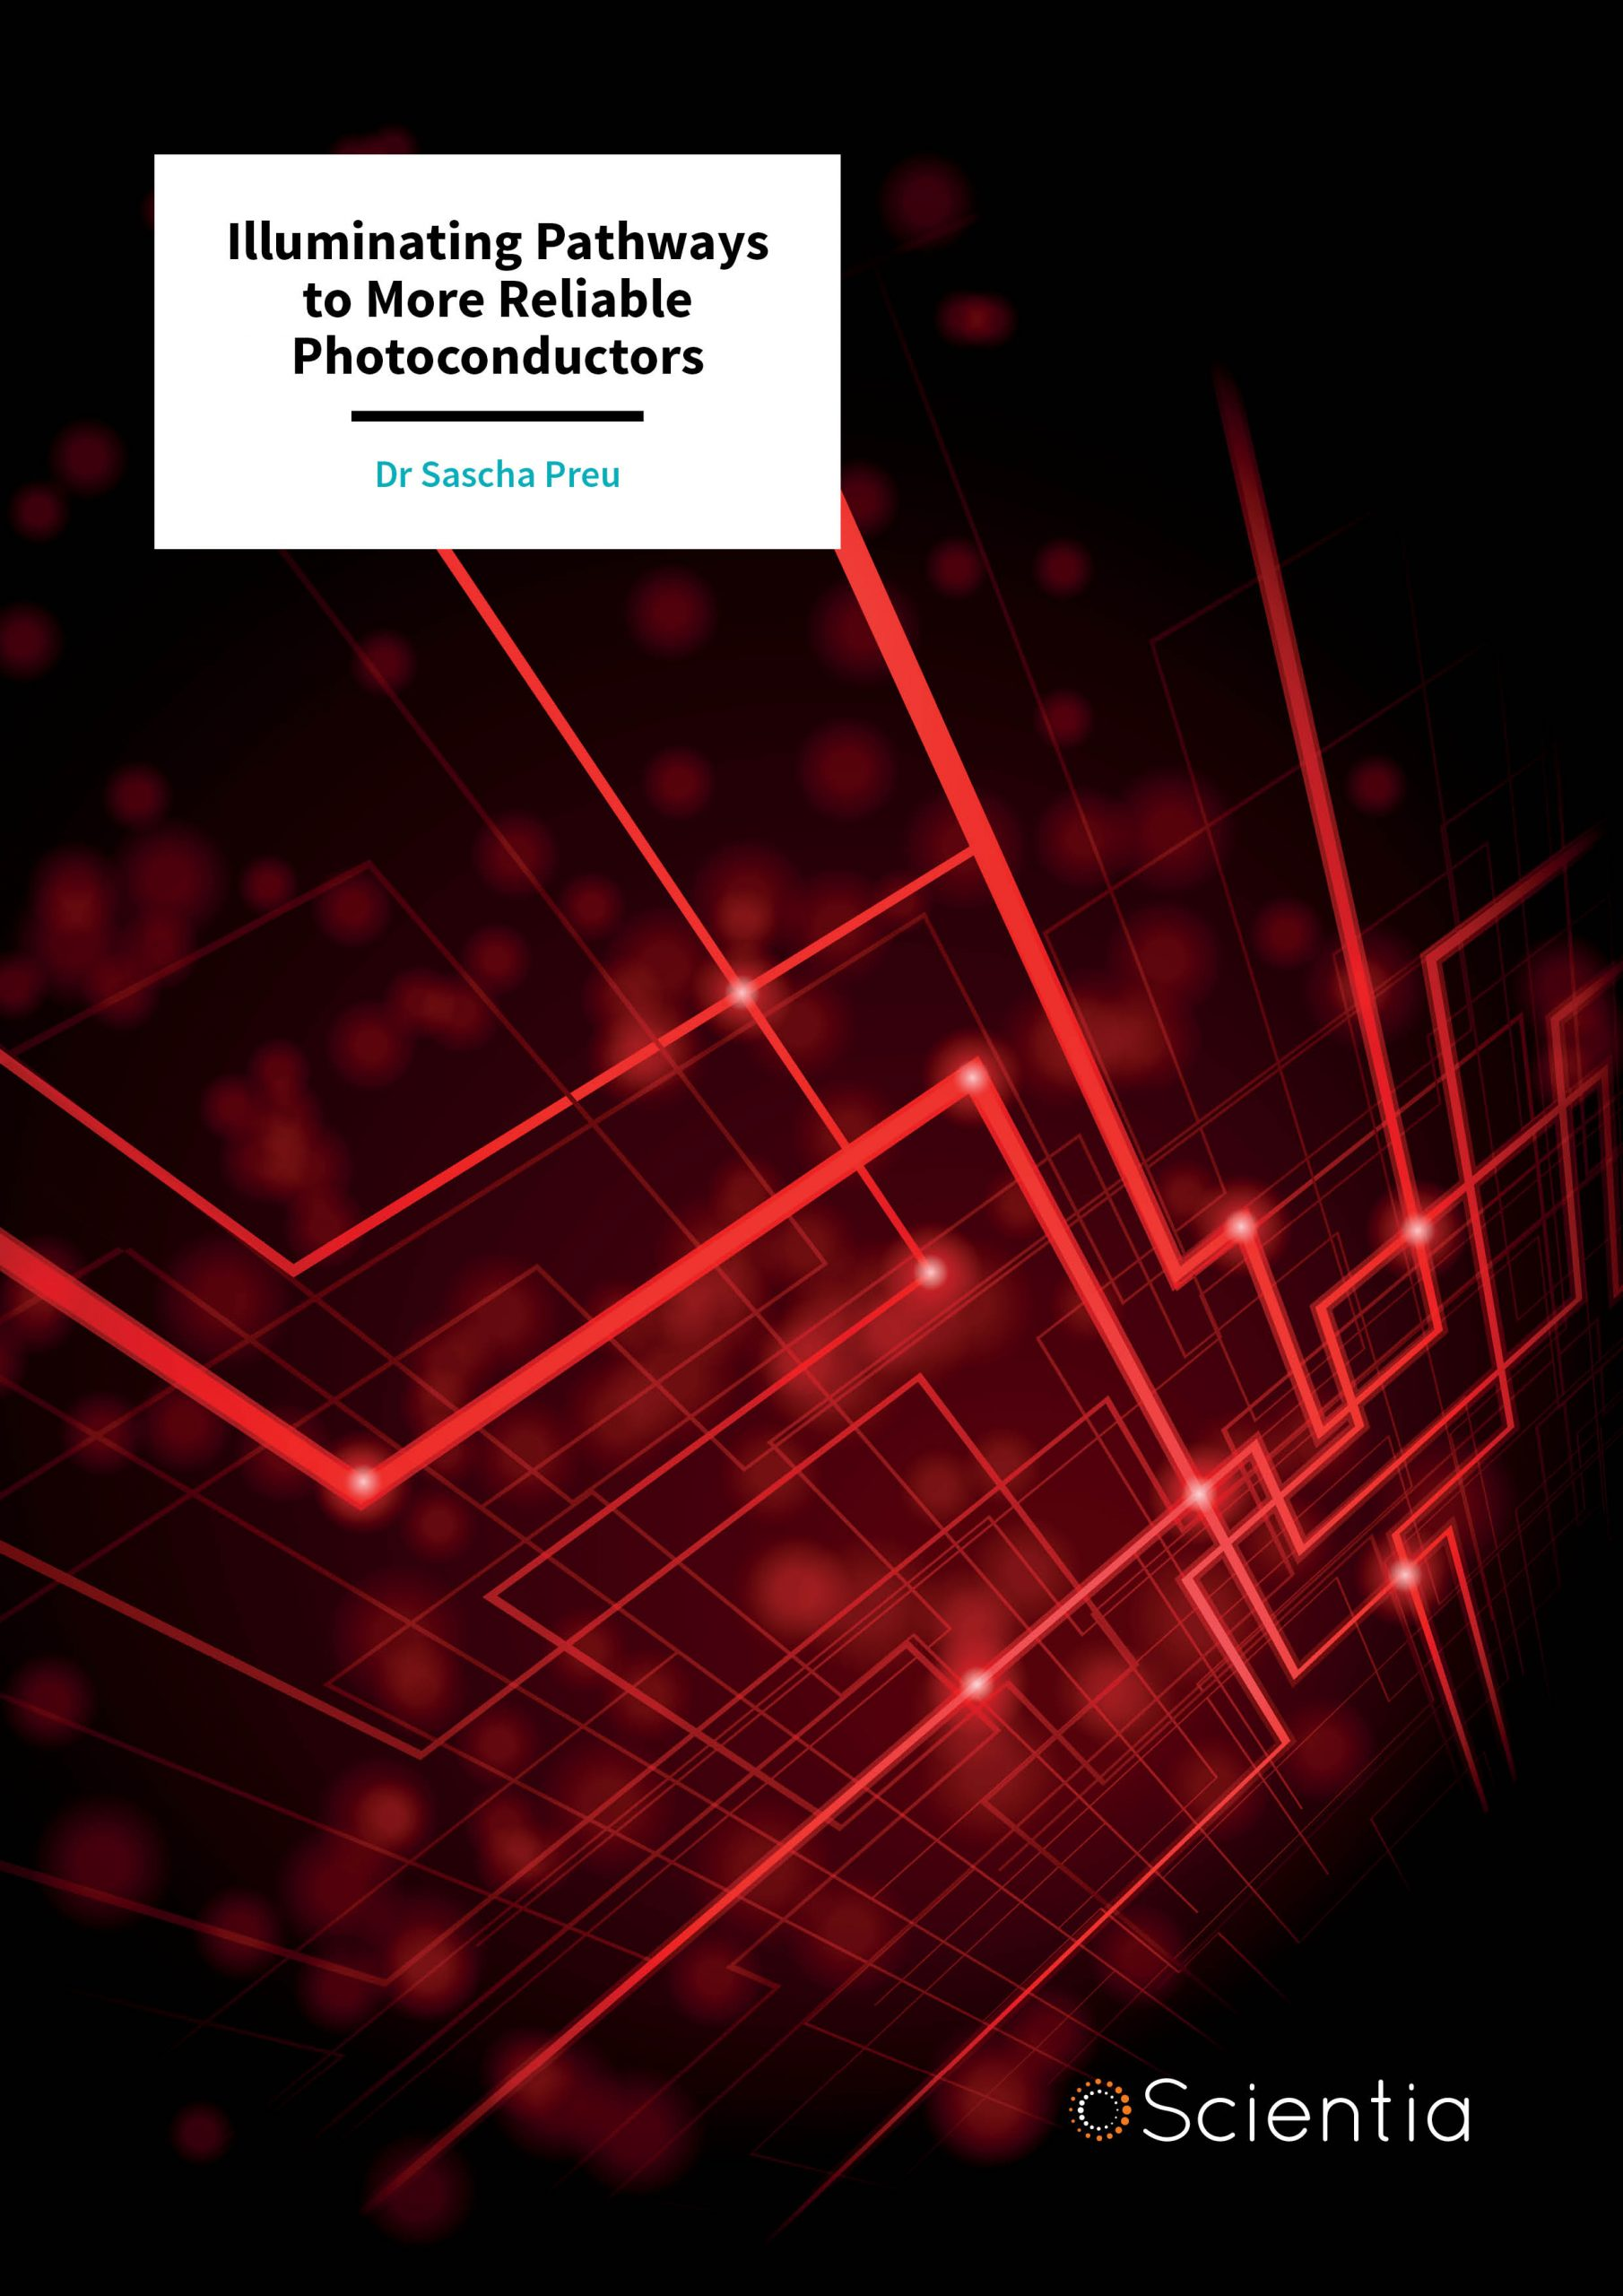 Dr Sascha Preu – Illuminating Pathways to More Reliable Photoconductors